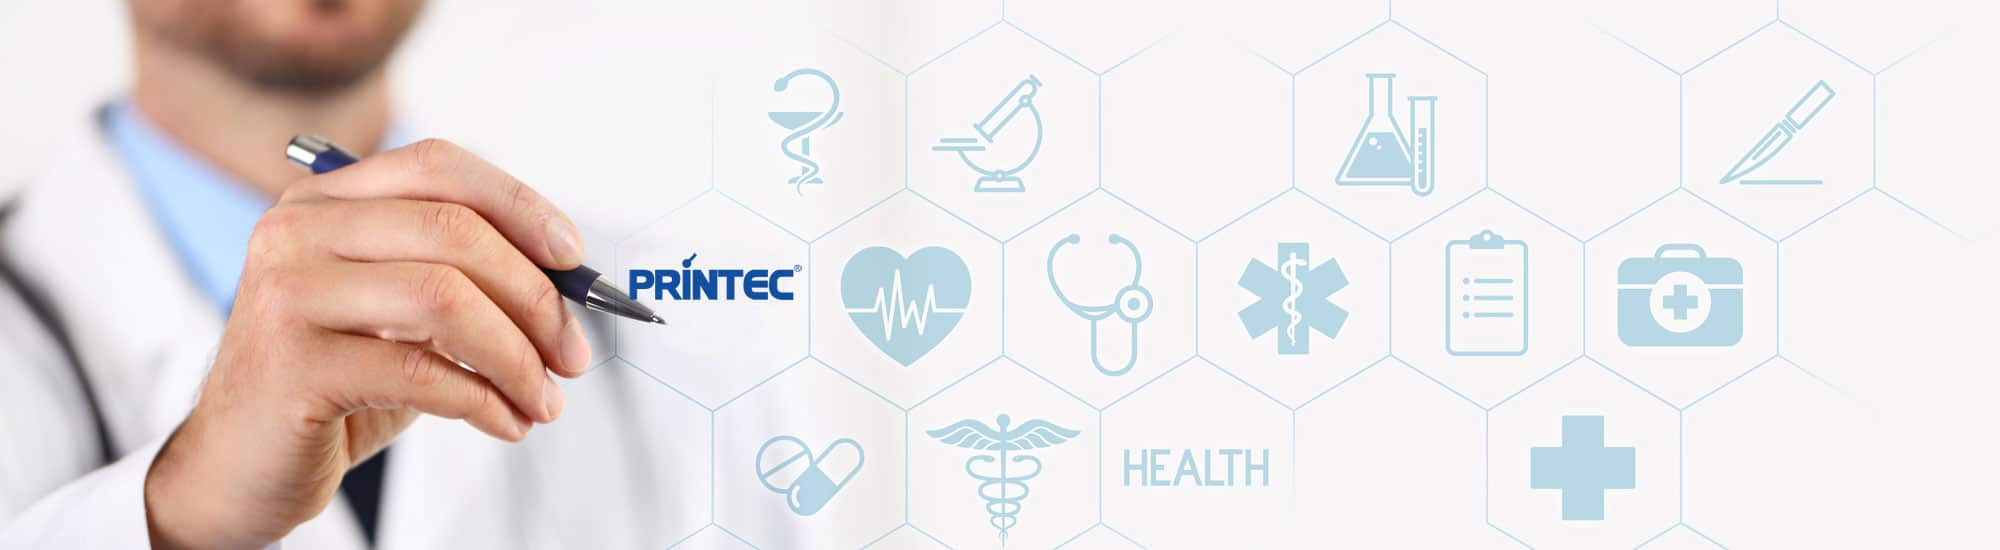 printec hc medical hmi manufacturer